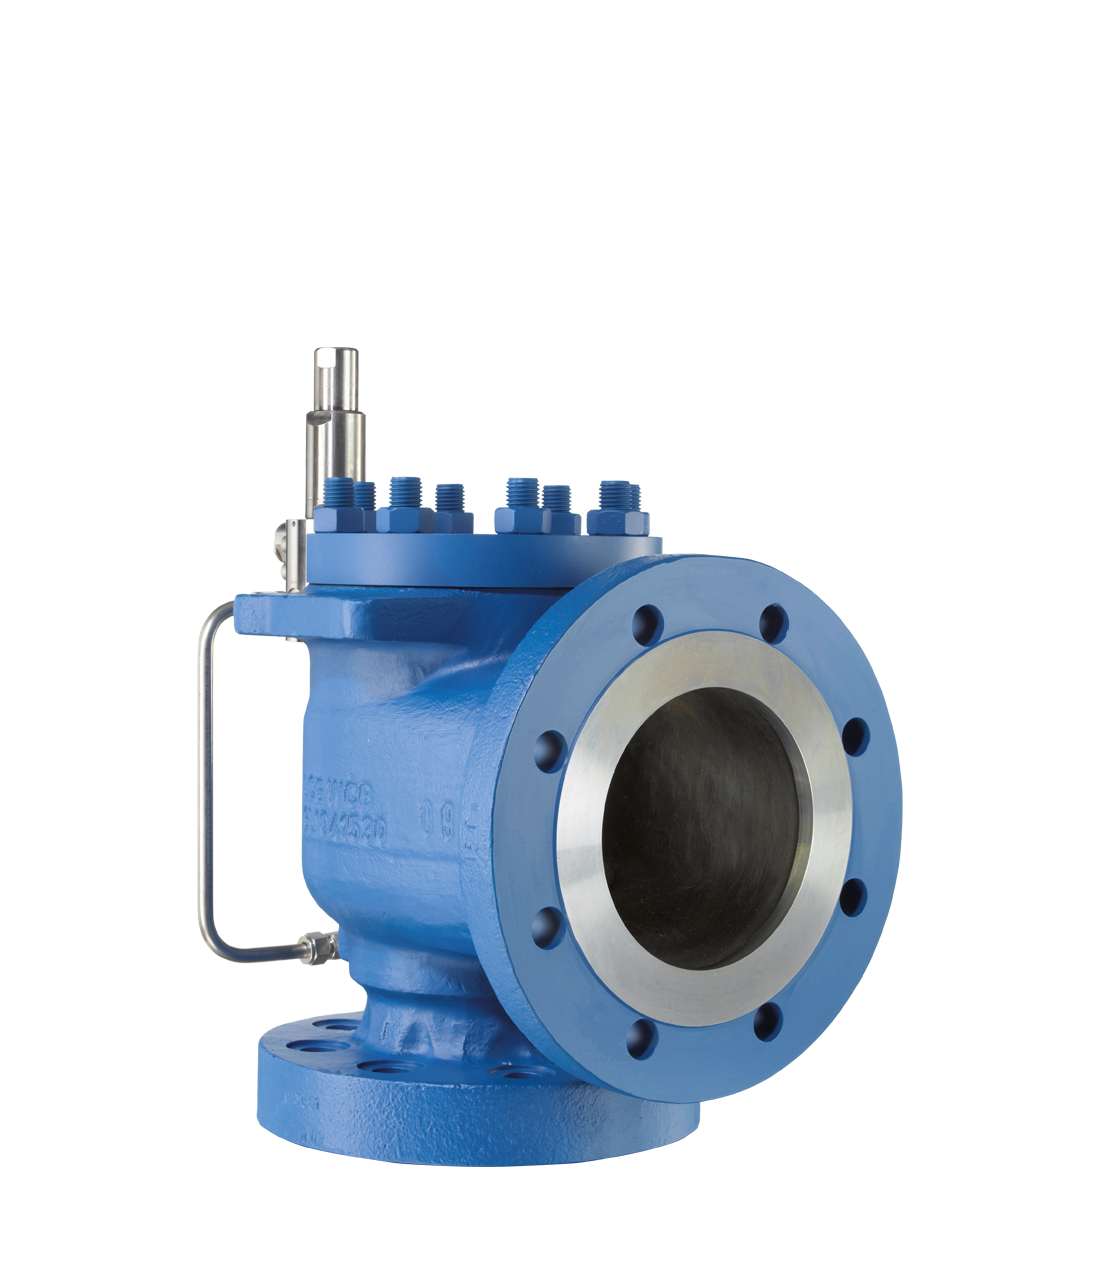 LESER High Efficiency Pressure Relief Valve